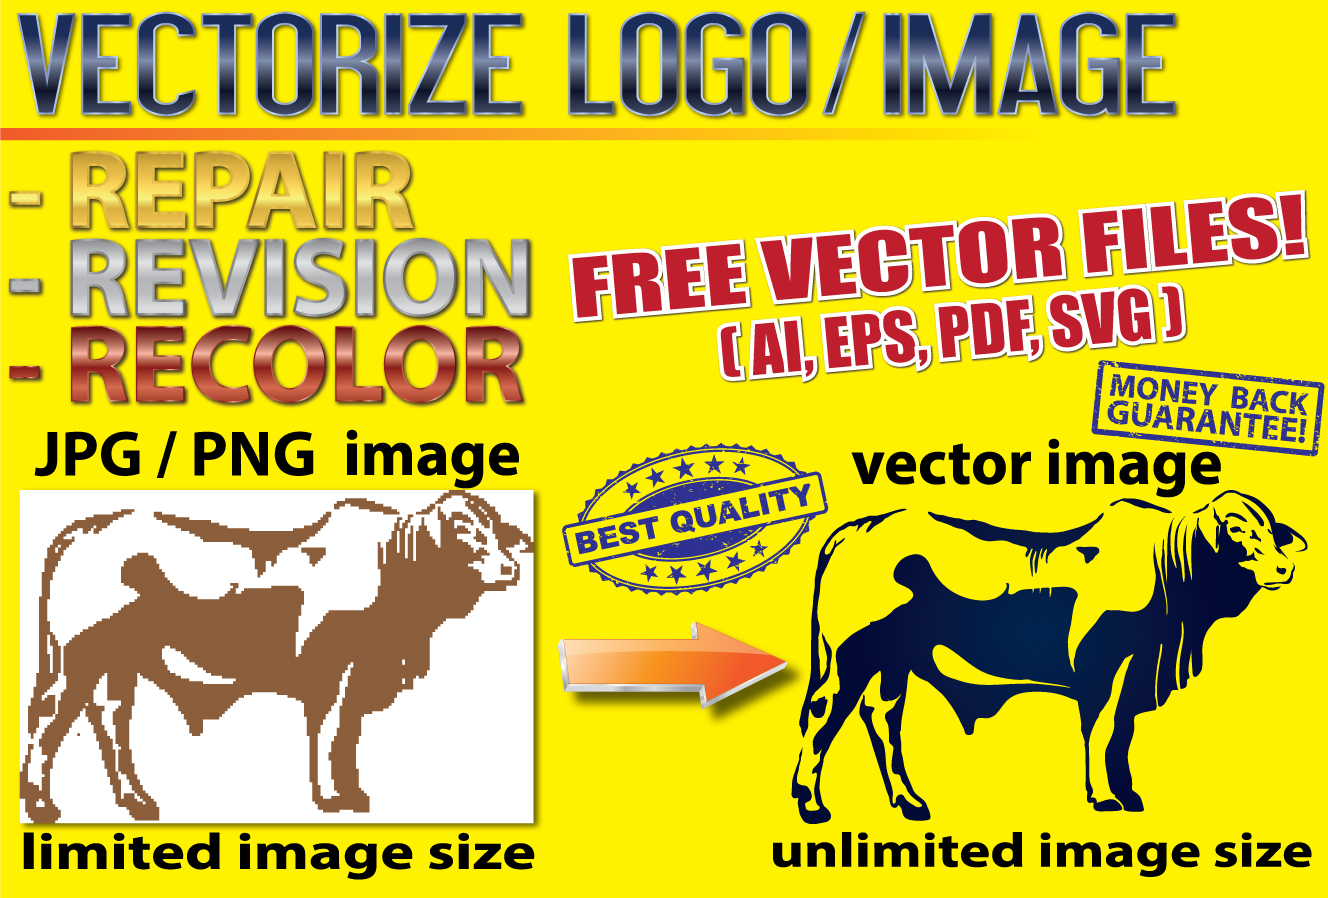 Vectorize Your Logo / Image